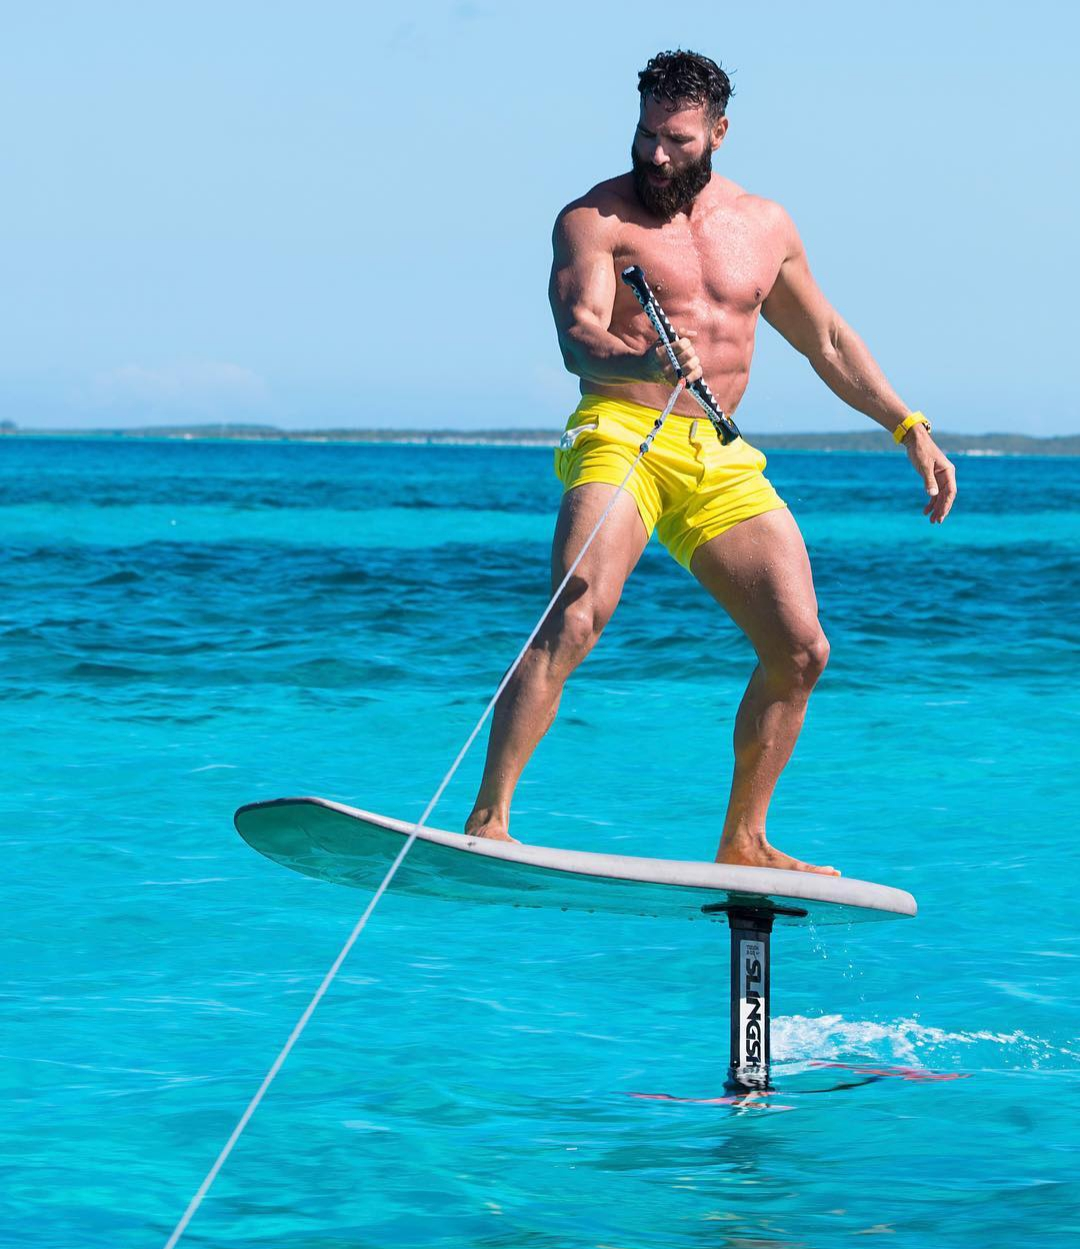 Dan bilzerian biography,success story and unknown facts